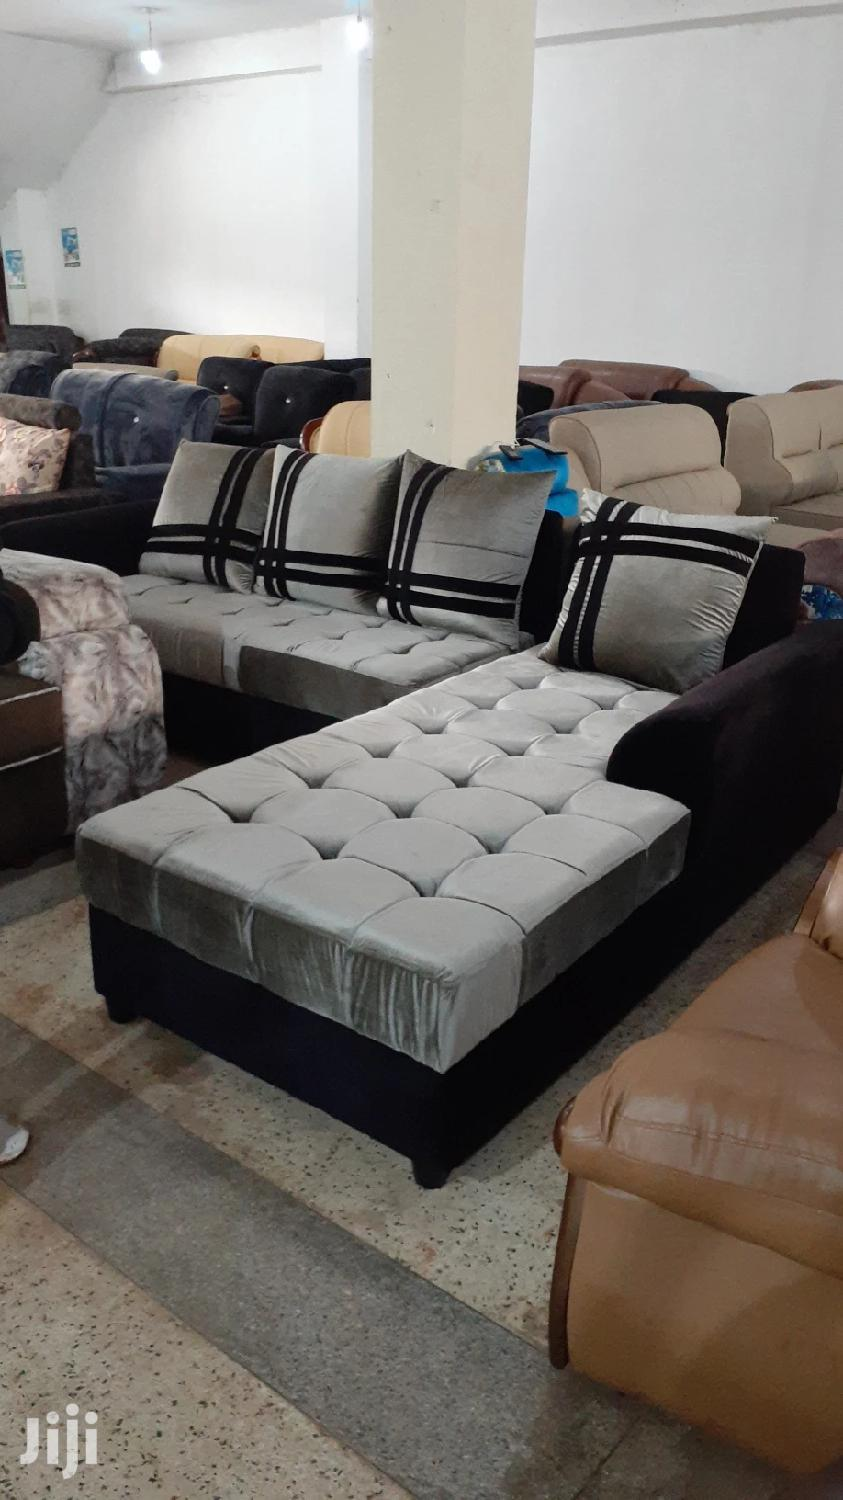 Bed Sofa Chair